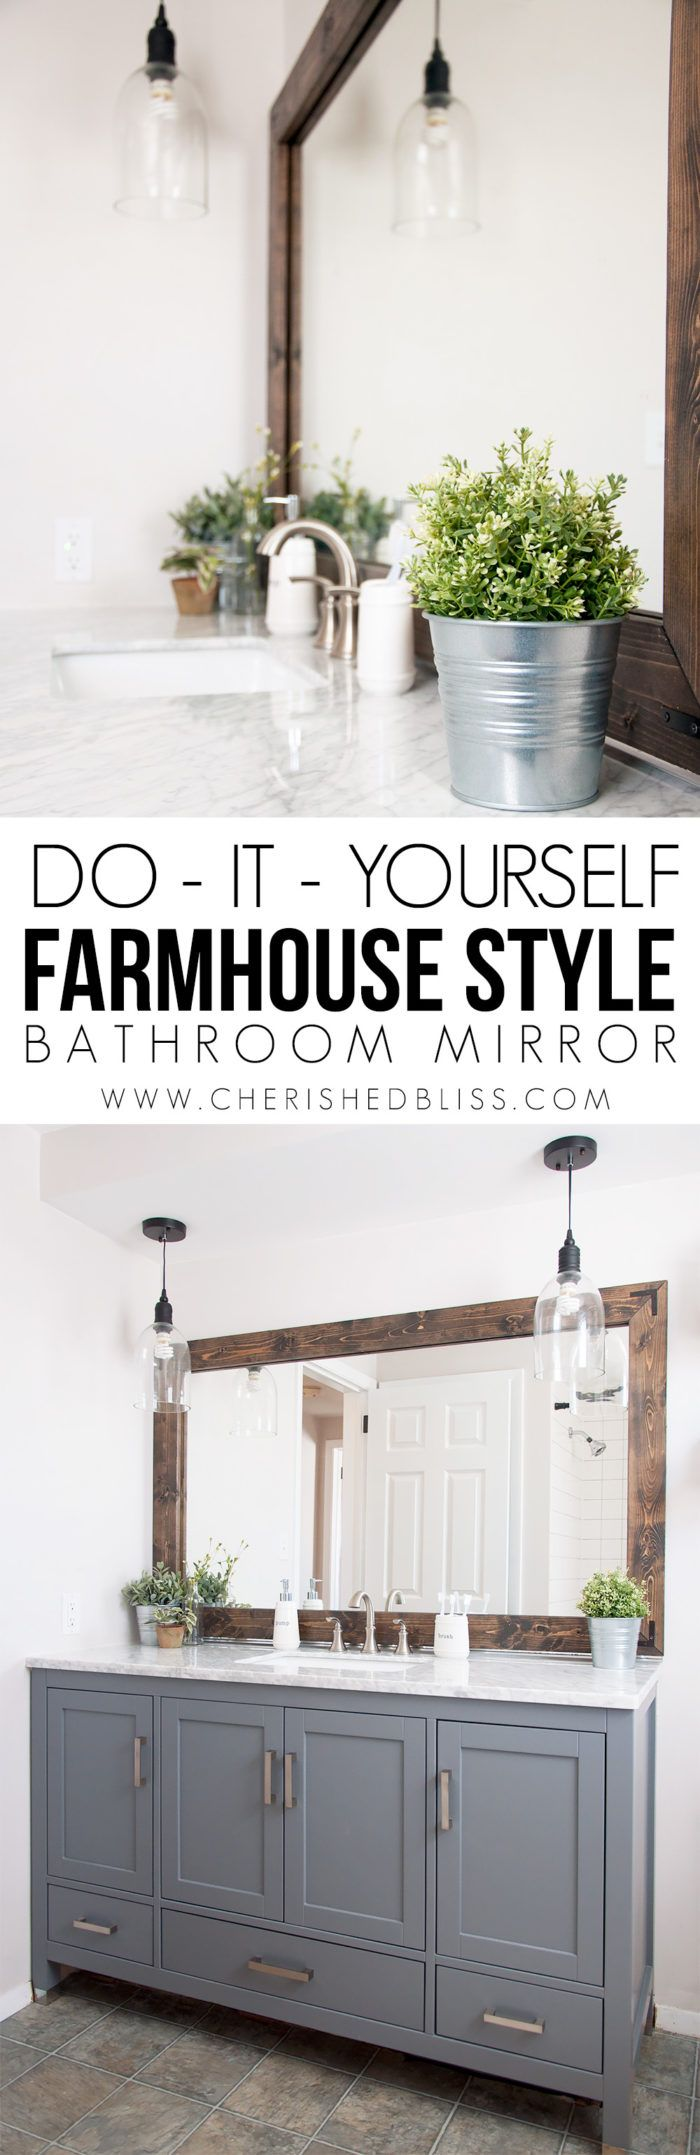 Creative bathroom mirror ideas - Add Character To Your Bathroom With This Diy Farmhouse Style Bathroom Mirror Tutorial